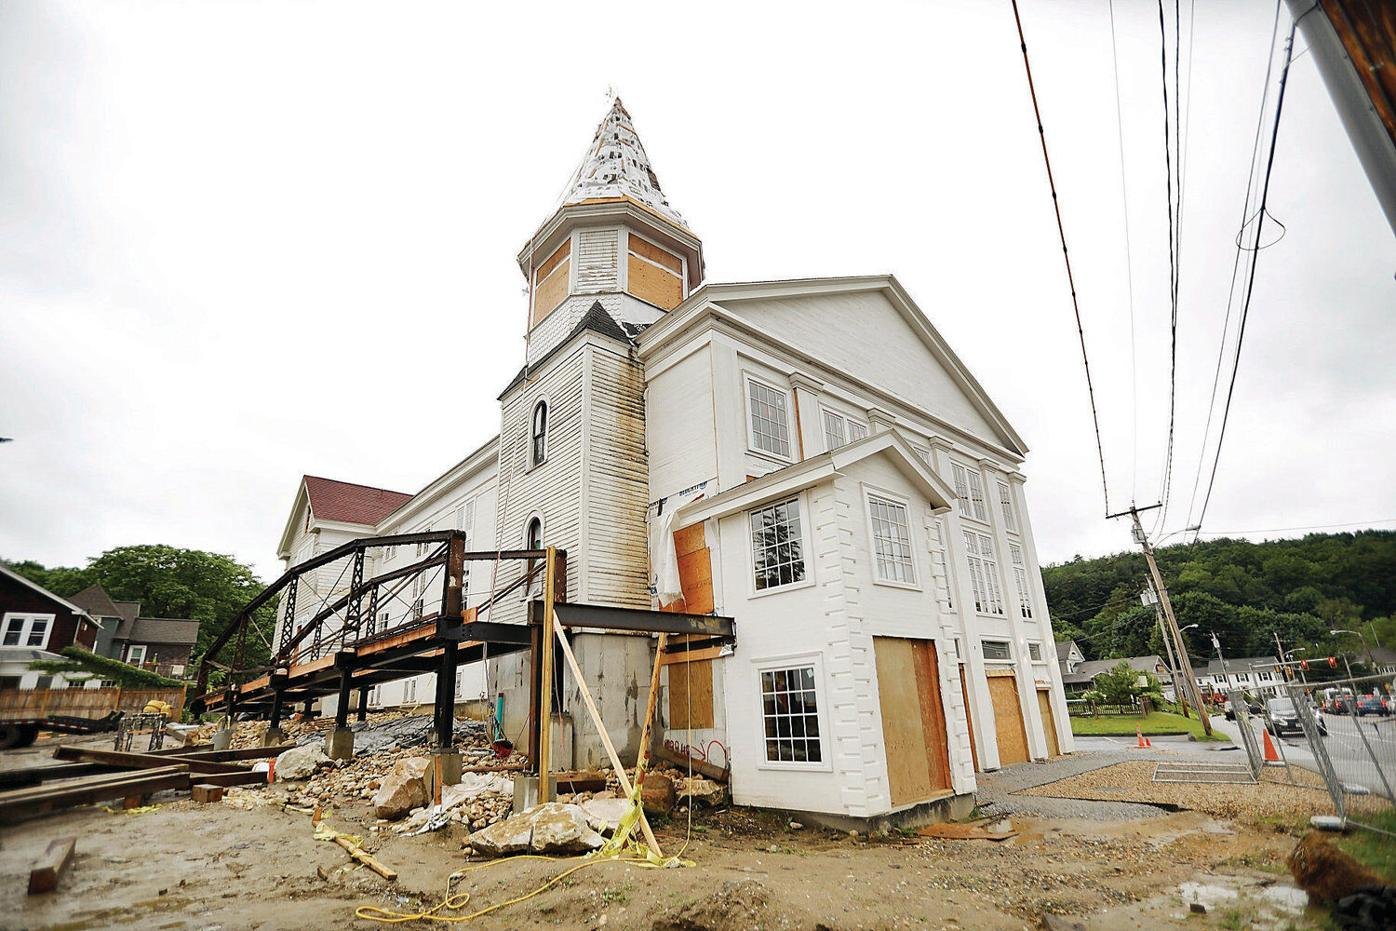 With 'flying church' renovations progressing, developer has high hopes